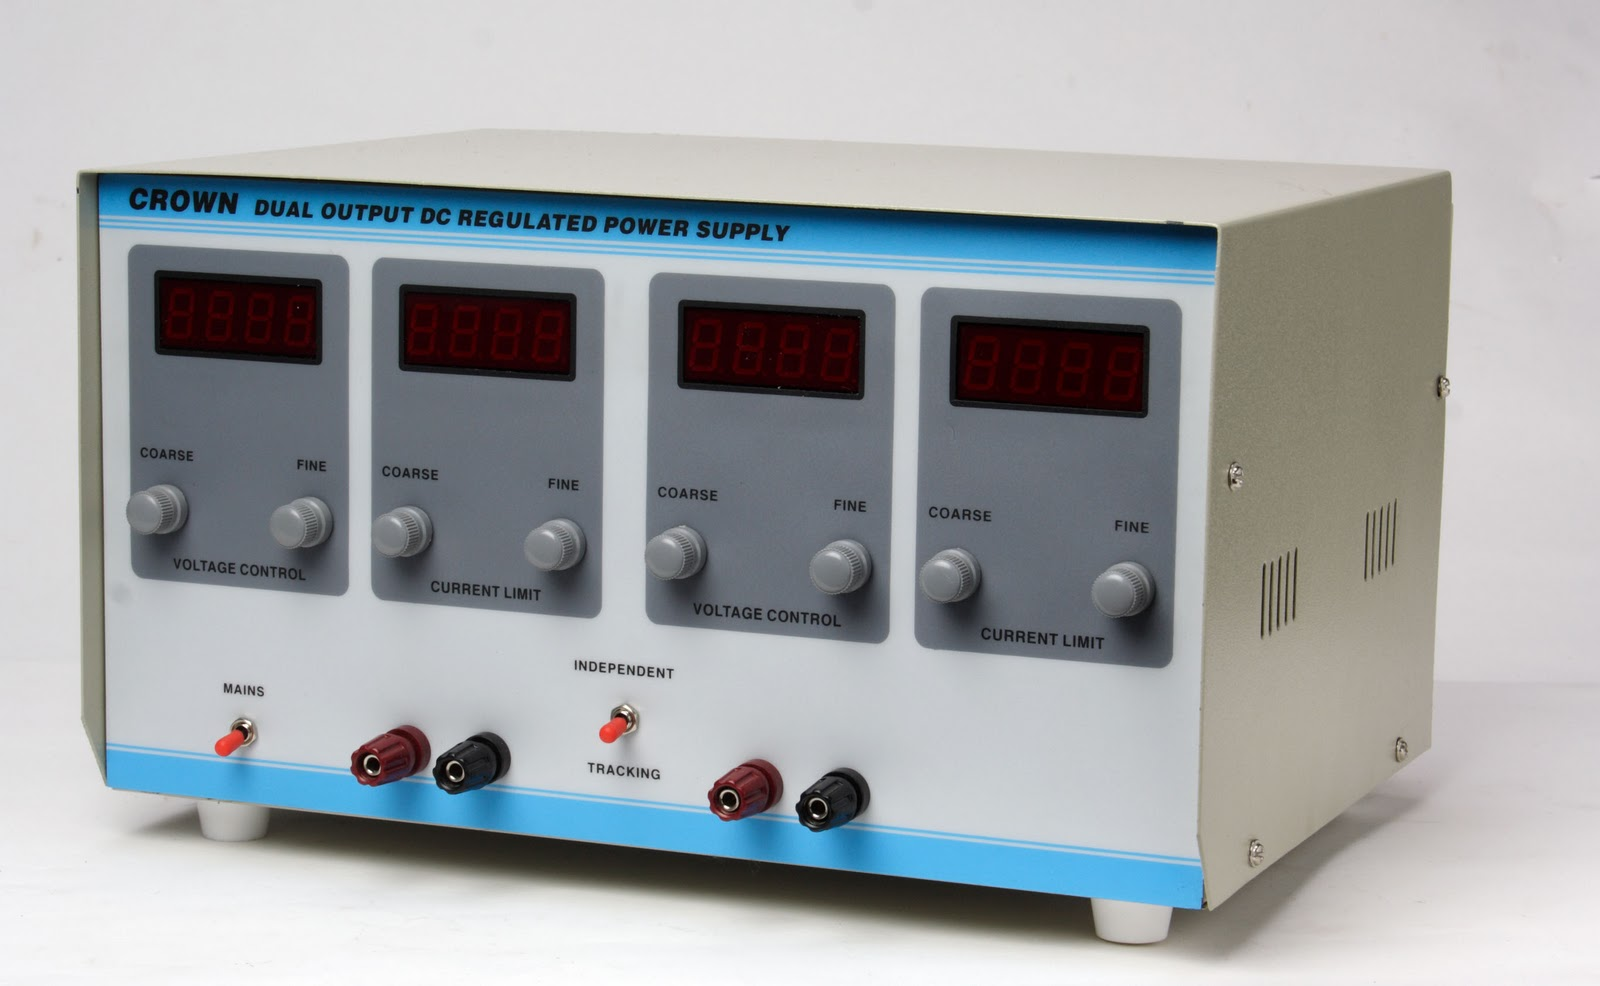 Dual Output Dc Regulated Power Supply 0 30v 2a Manufacturers Crown Made Are Constant Voltage Current Limit Type Supplies Have High Regulation For Load Line